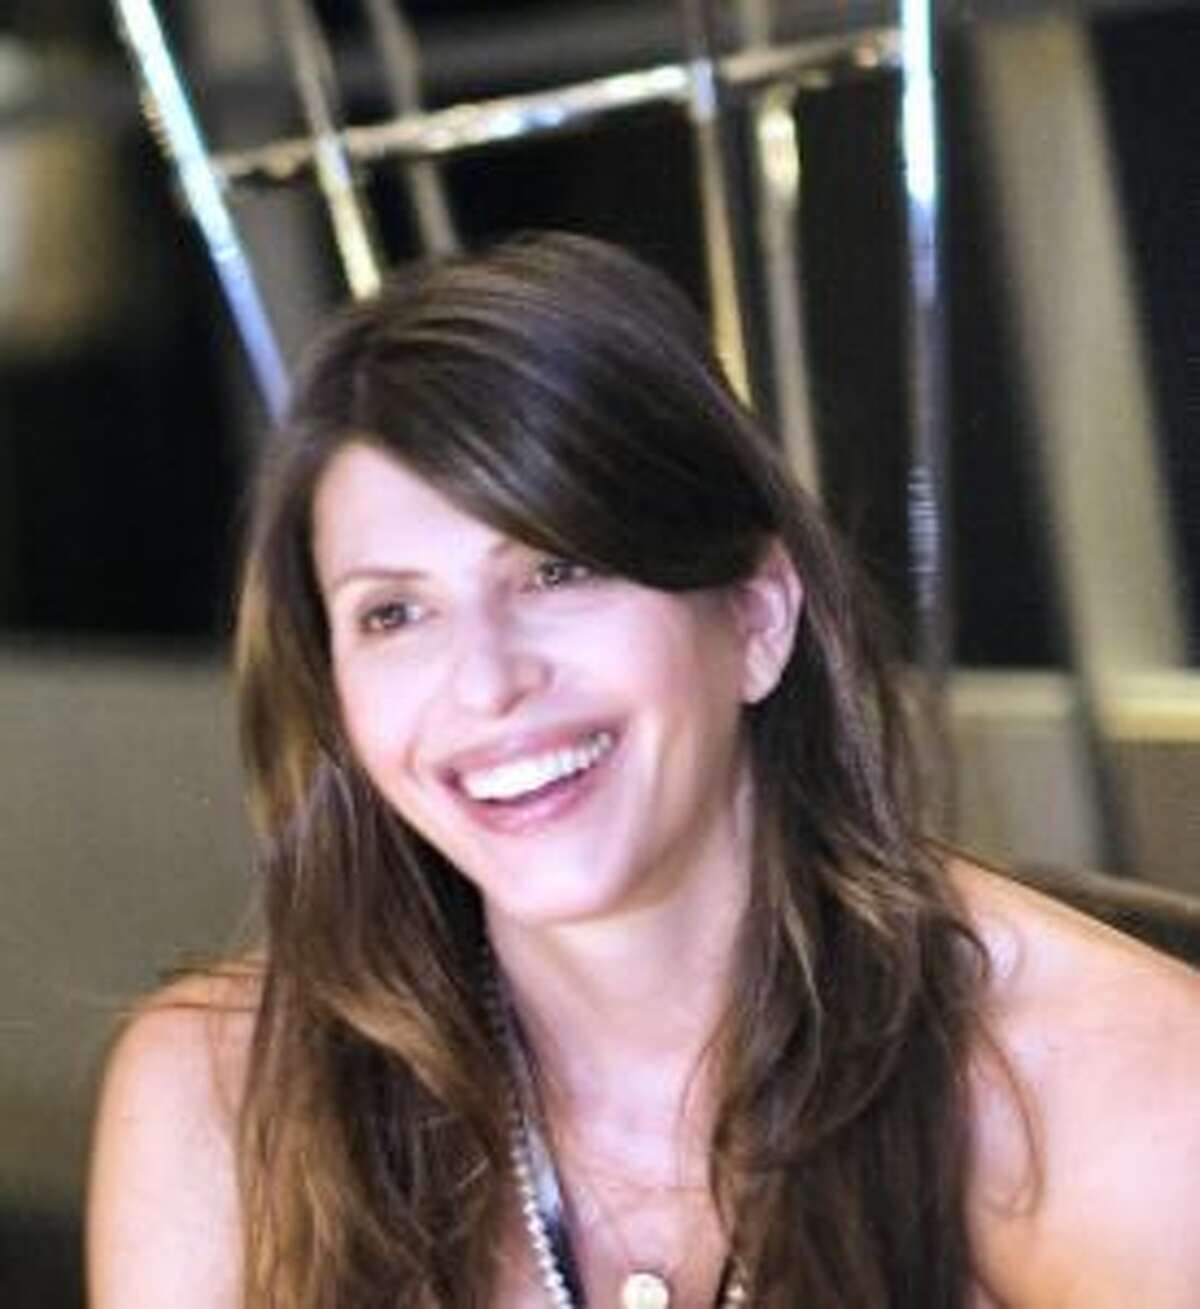 The family of Jennifer Farber Dulos, the 50-year-old New Canaan mother of five missing since May 24, said they are